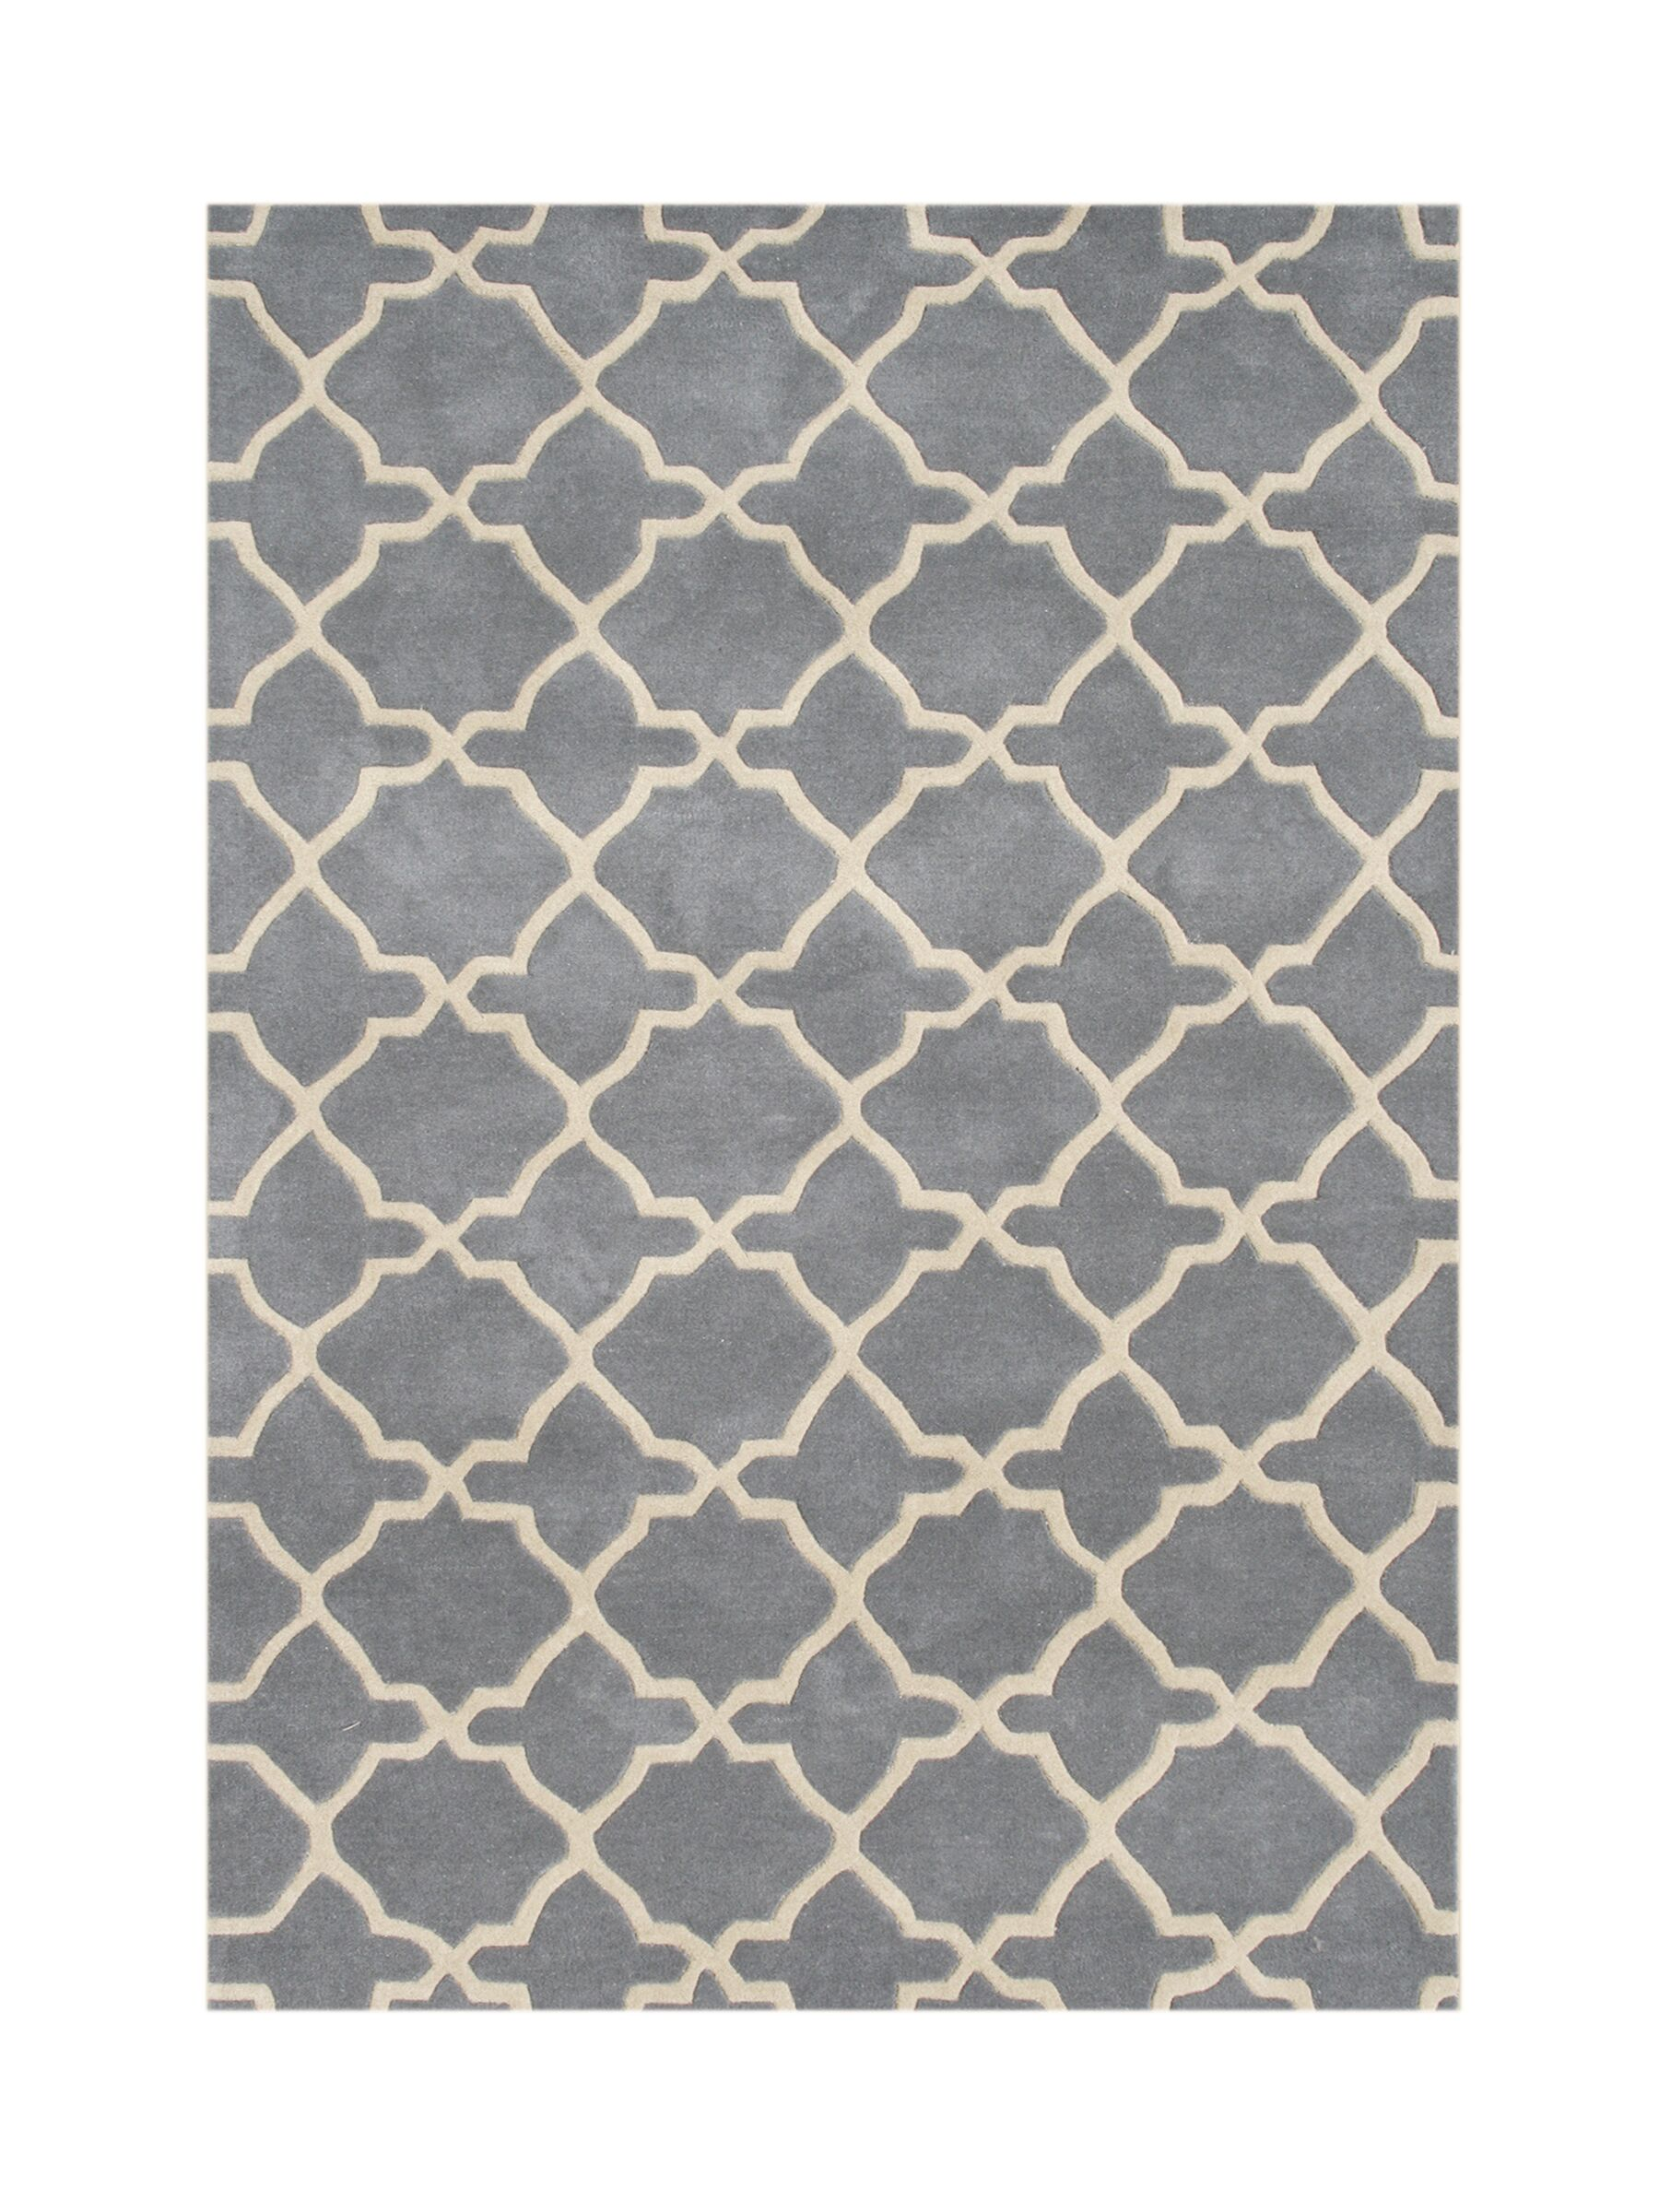 Vale Hand-Tufted Gray/Beige Area Rug Rug Size: Rectangle 8' x 10'